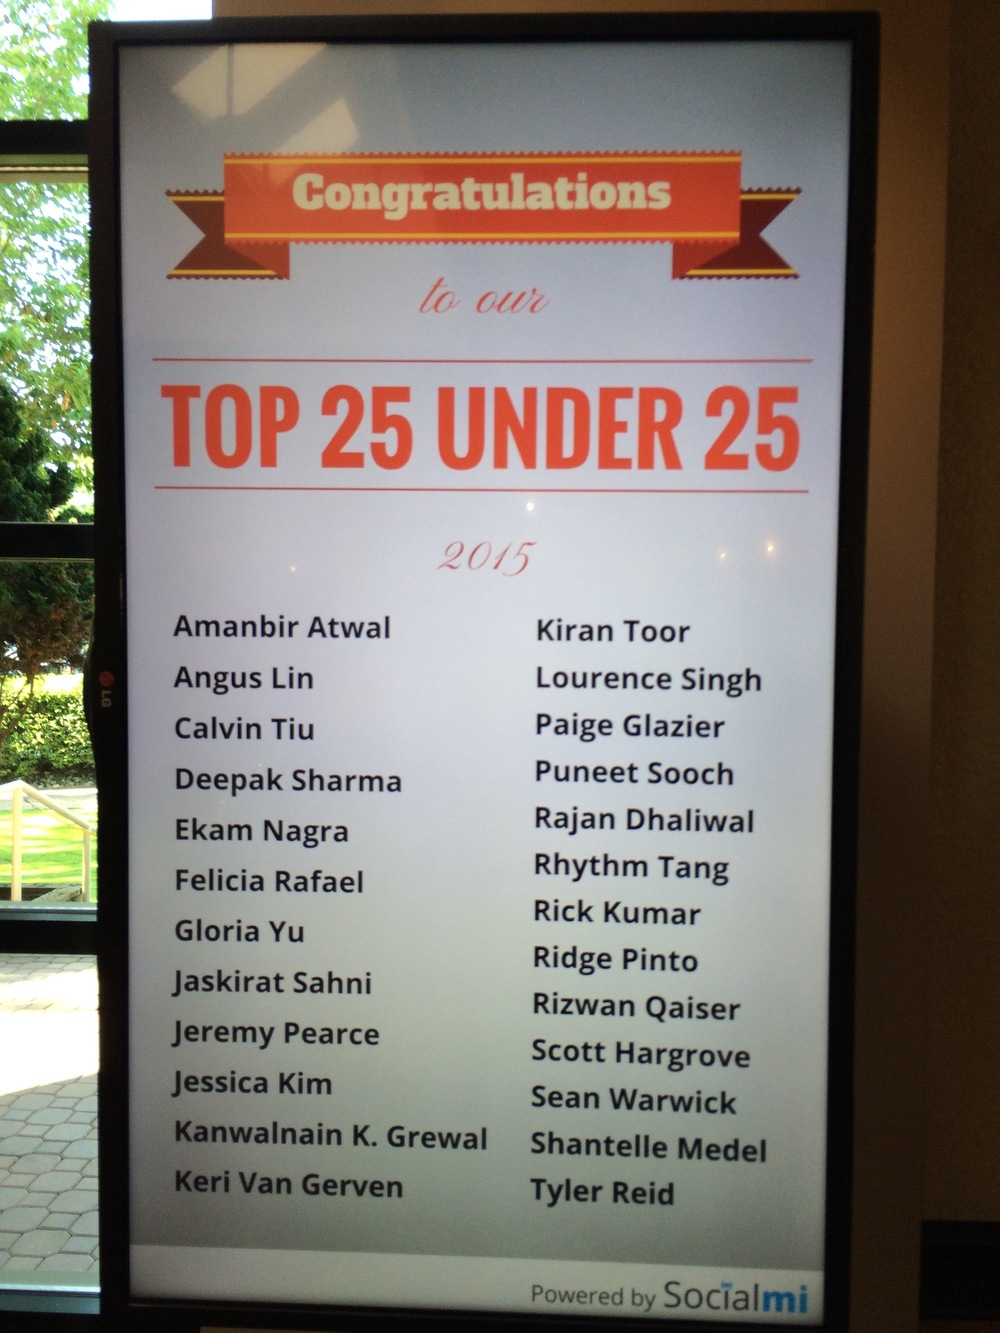 Surrey Board of Trade's Top 25 Under 25 2015